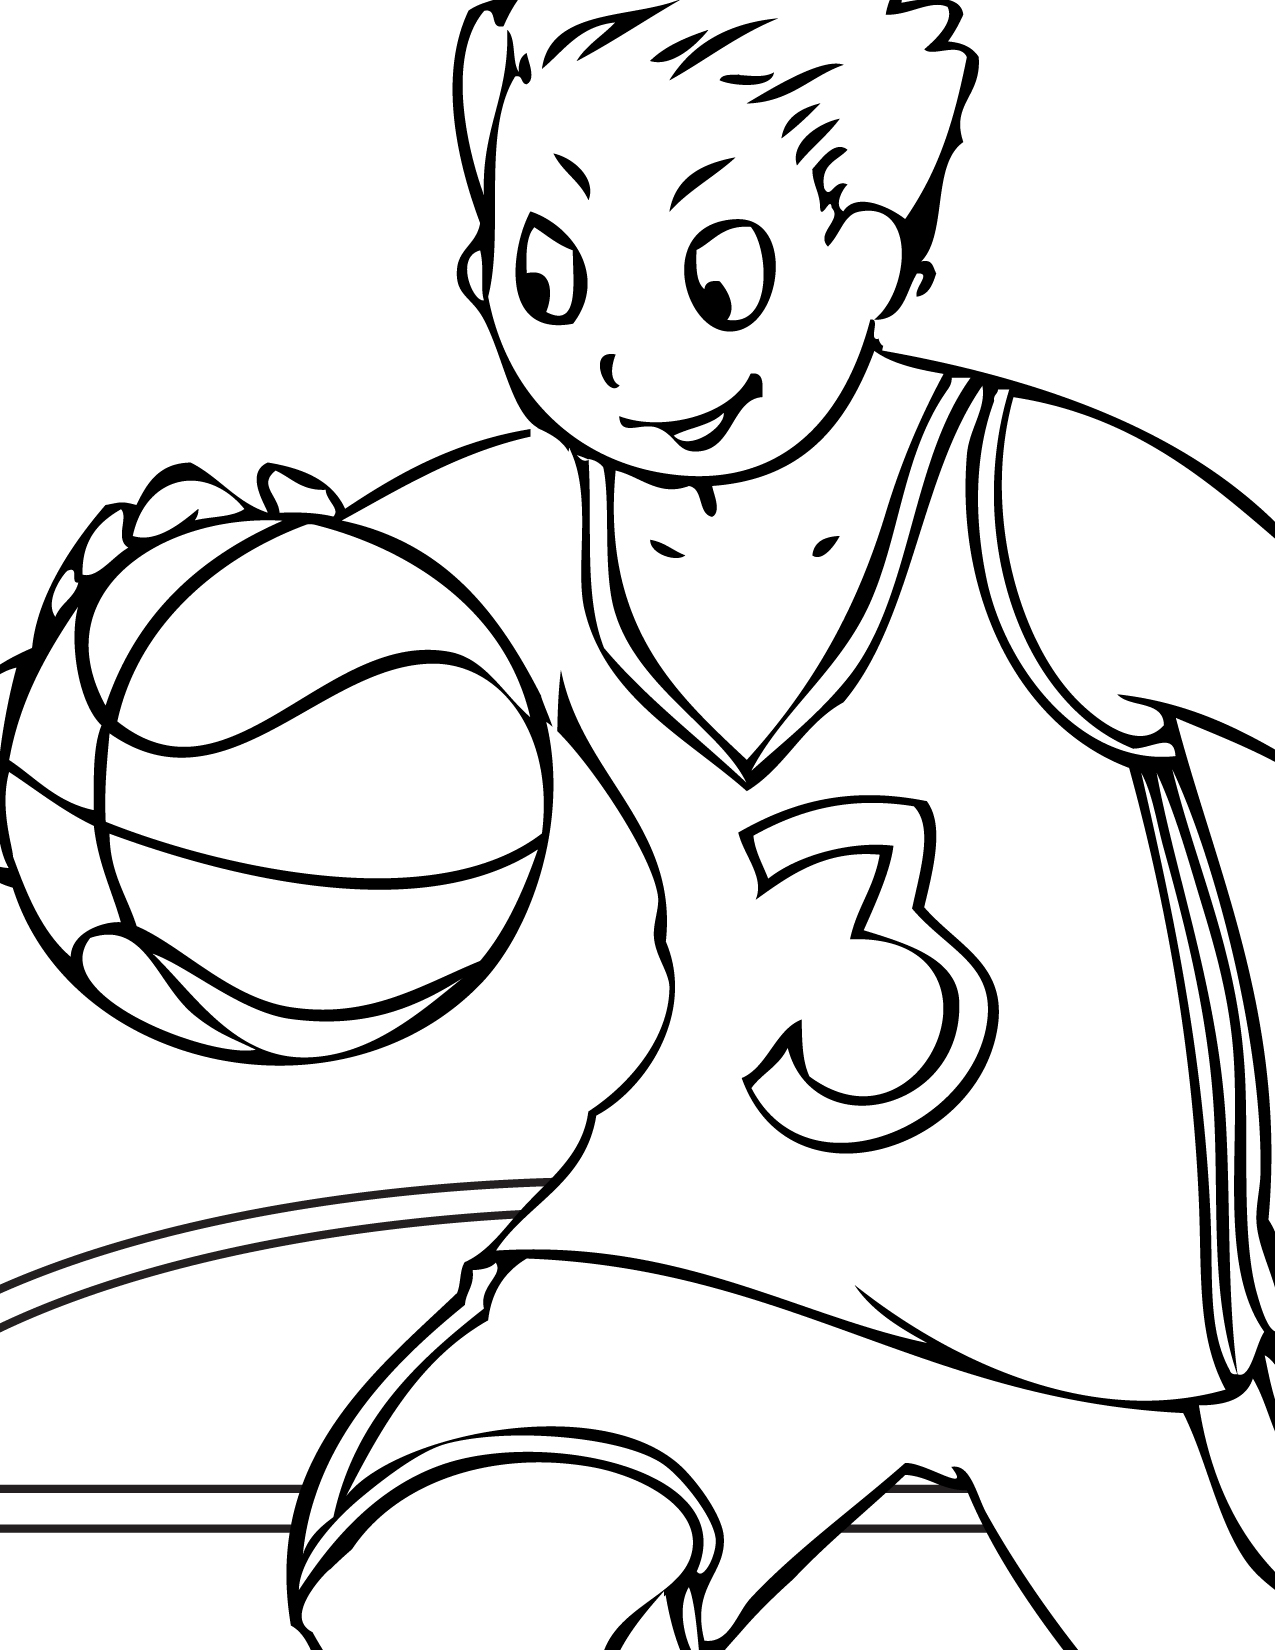 sports coloring pages for kids - photo#6